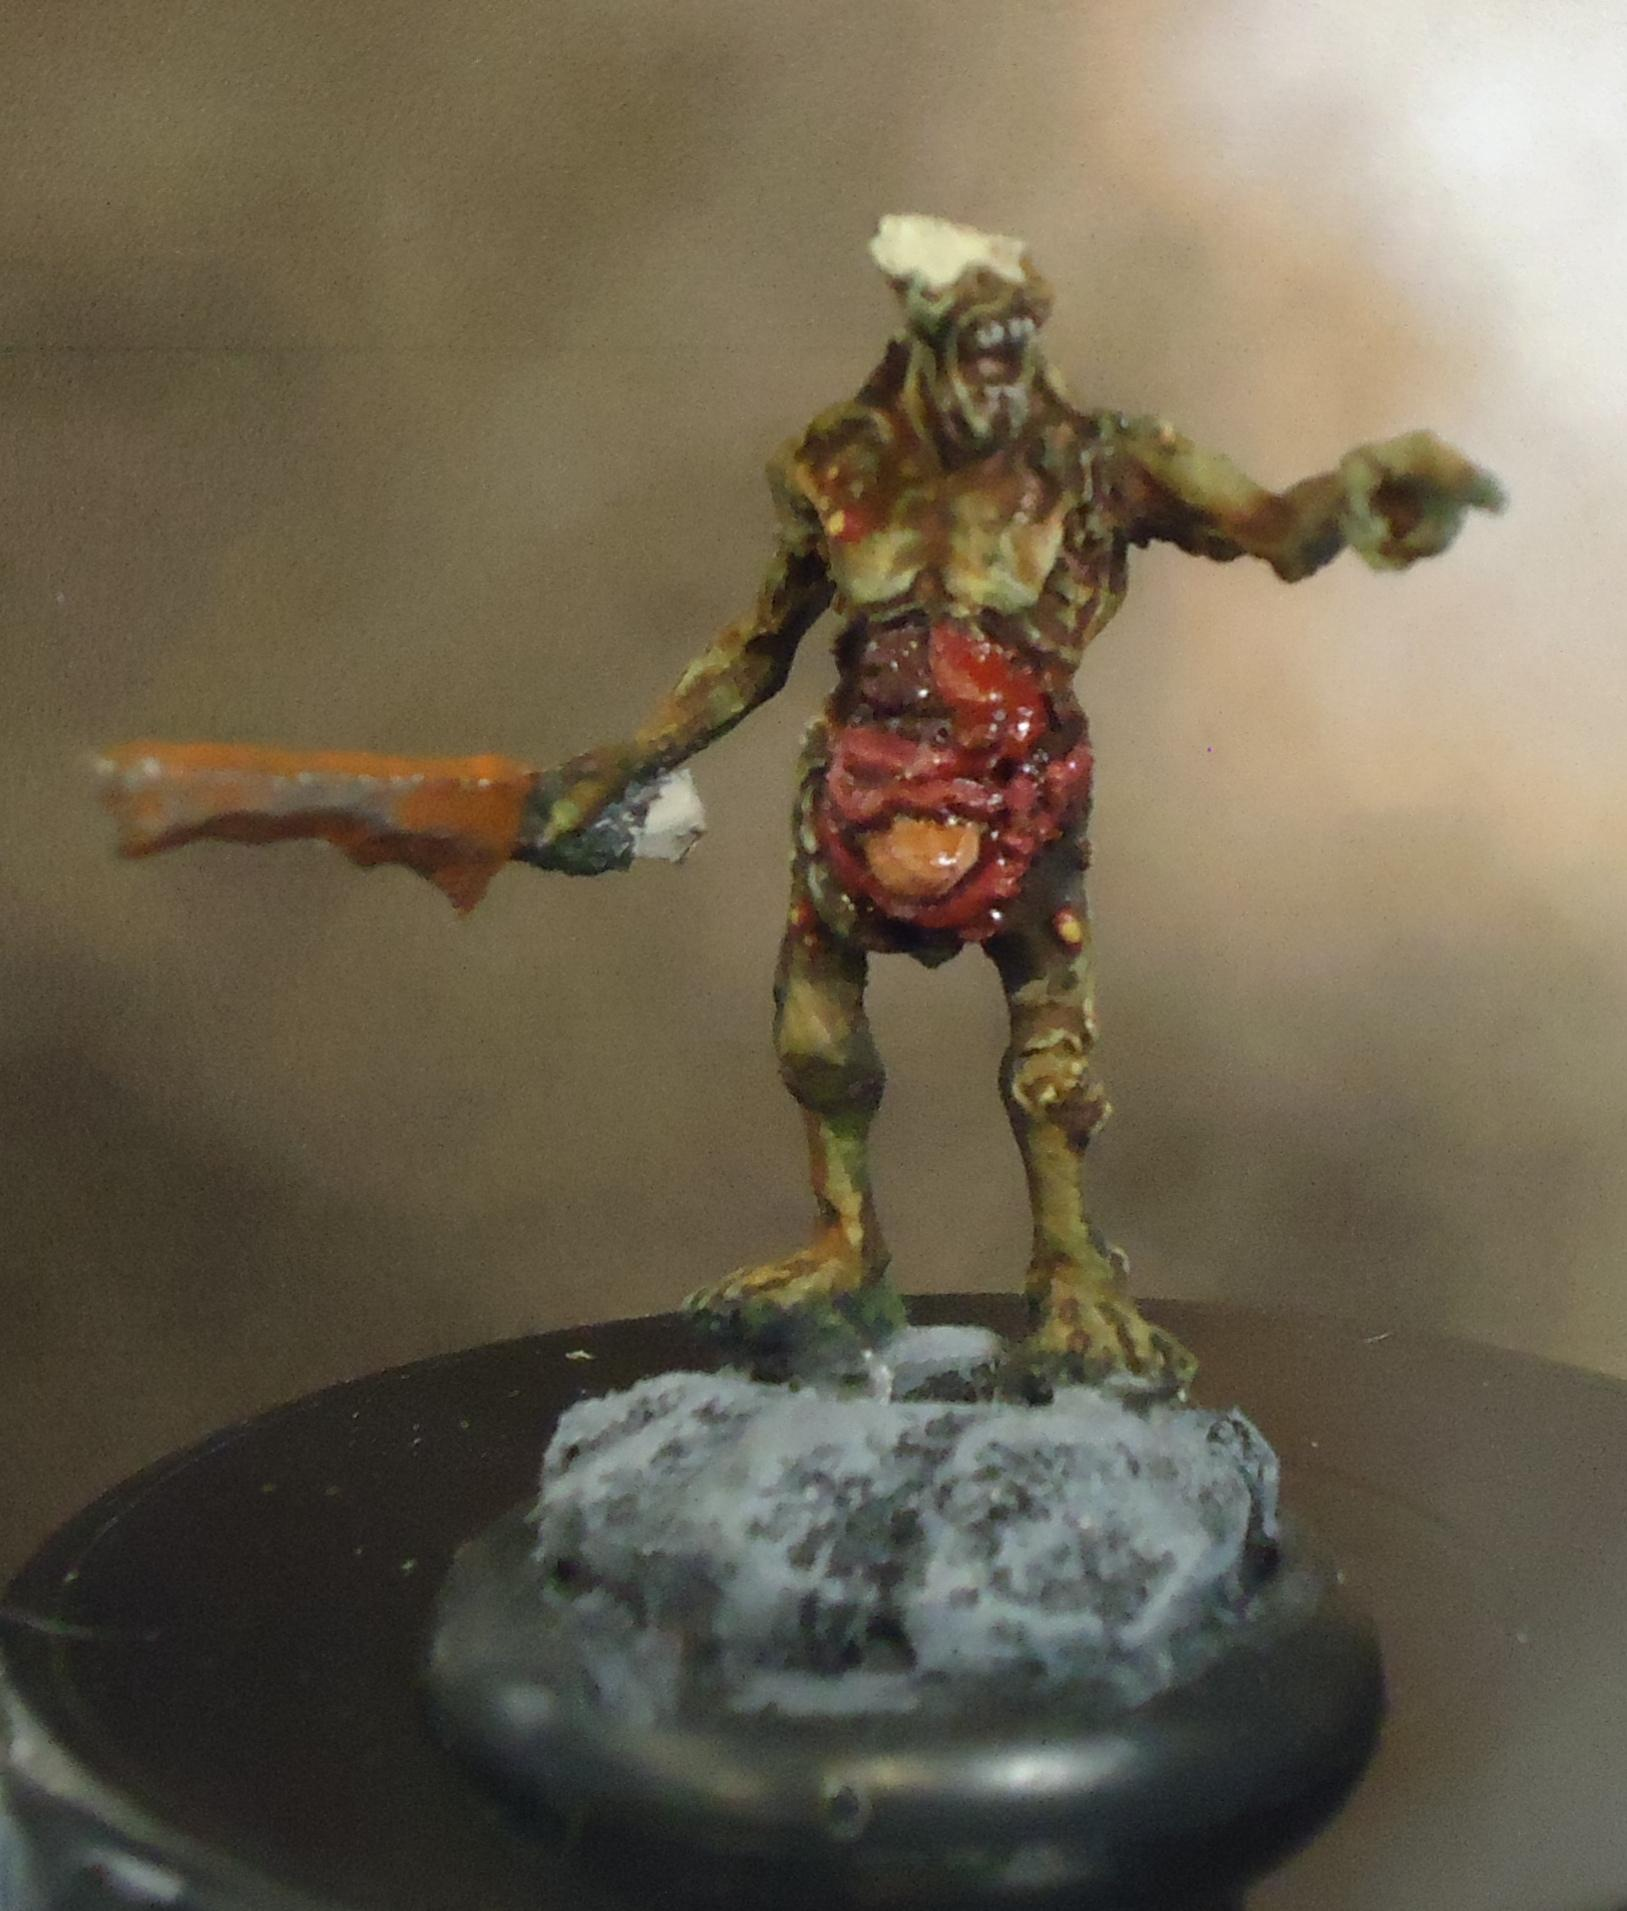 Chaos, Daemons, Decay, Nurgle, Plague Bearer Champion, Rot, Rust